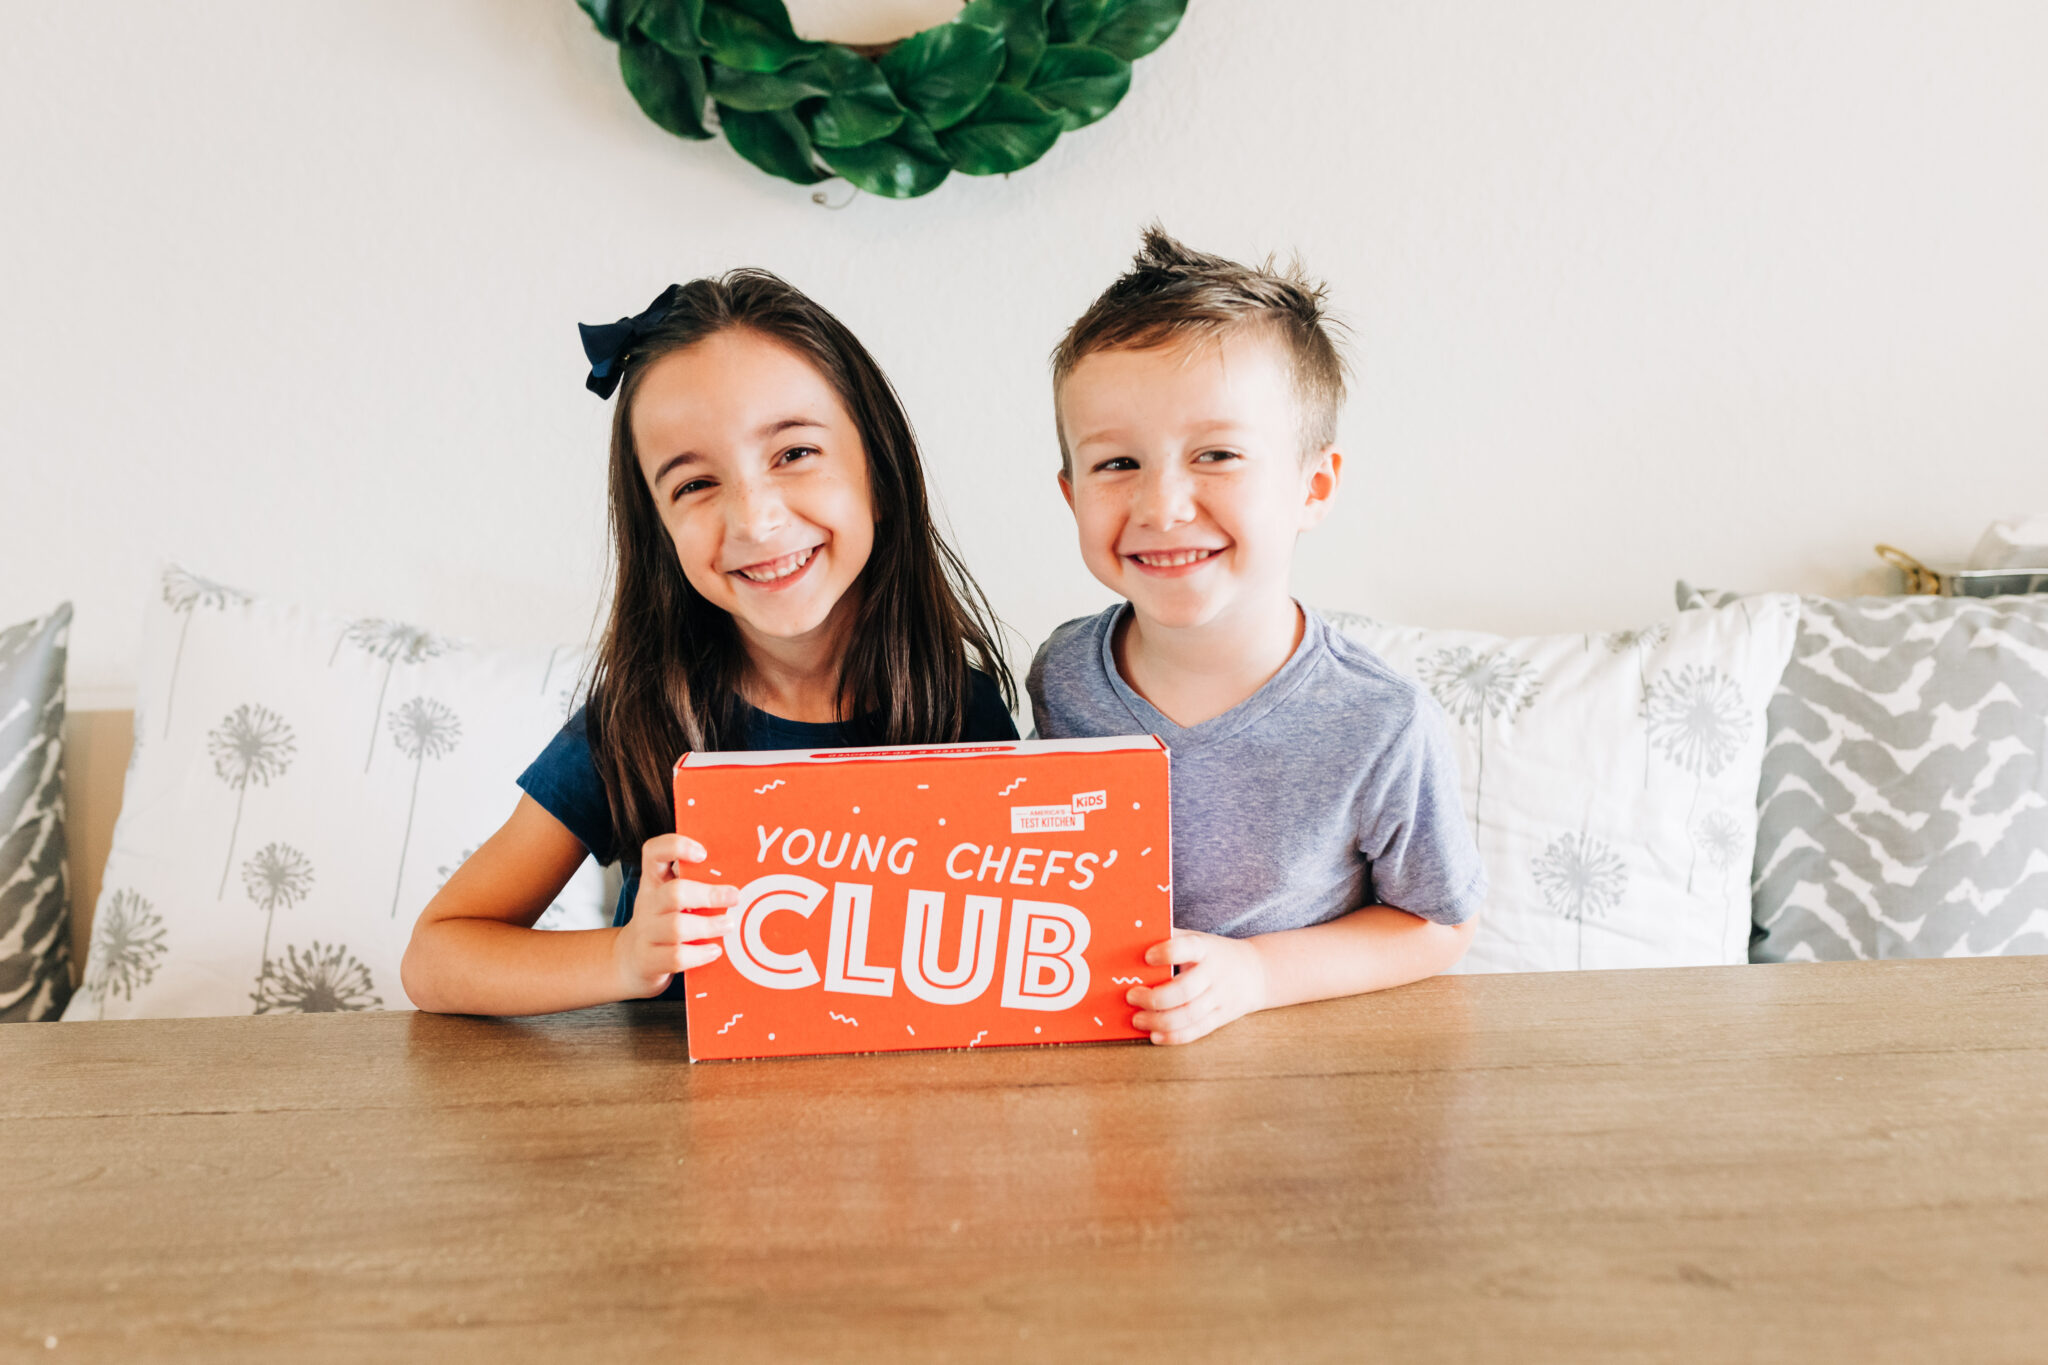 Young Chefs' Club, kids subscription box, STEAM activities for first graders and up, cooking with kids, kid tested recipes